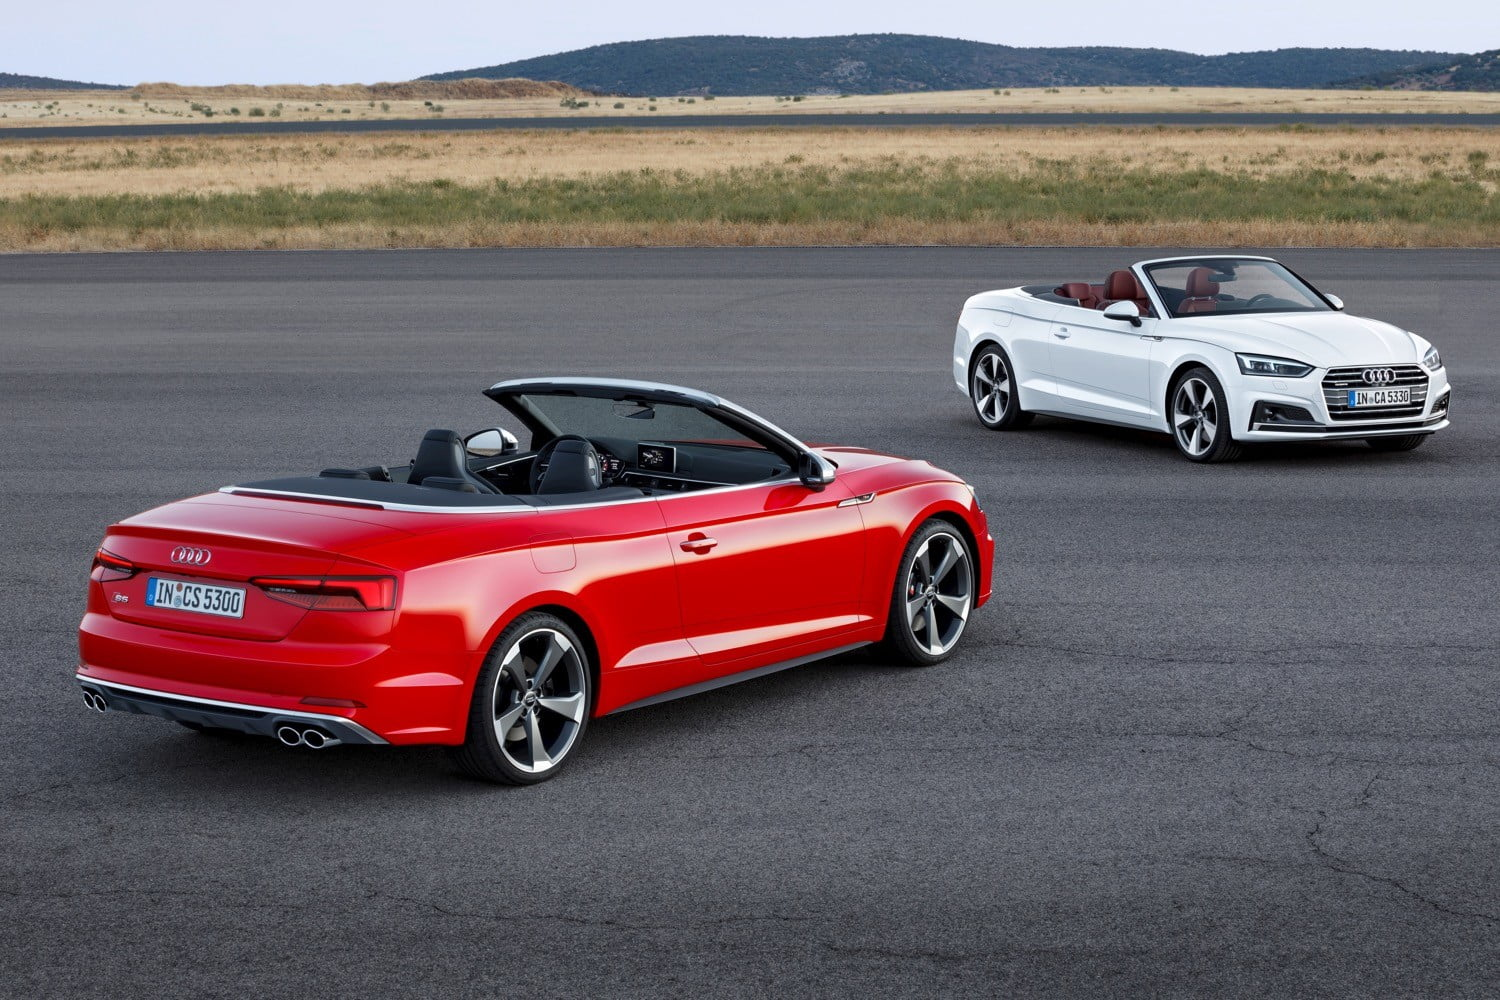 htm a replace cabriolet friend photos email convertibles top more cabrio convertible audi cab p